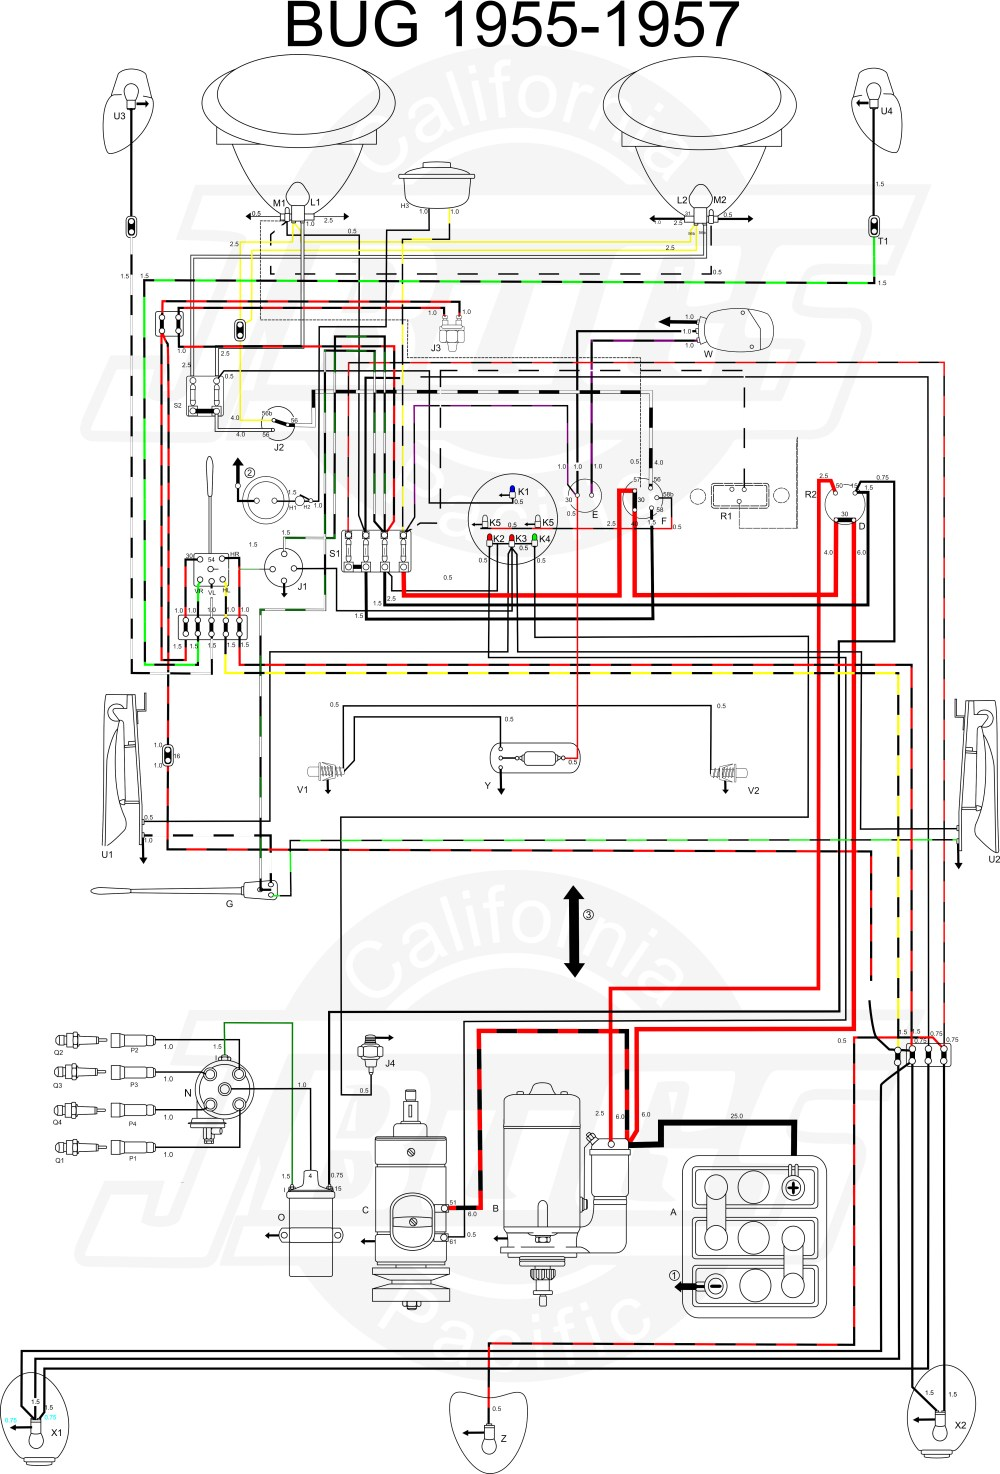 medium resolution of 1963 vw bug wiring diagram wiring diagram third level vw engine wiring diagram 1963 beetle wiring diagram